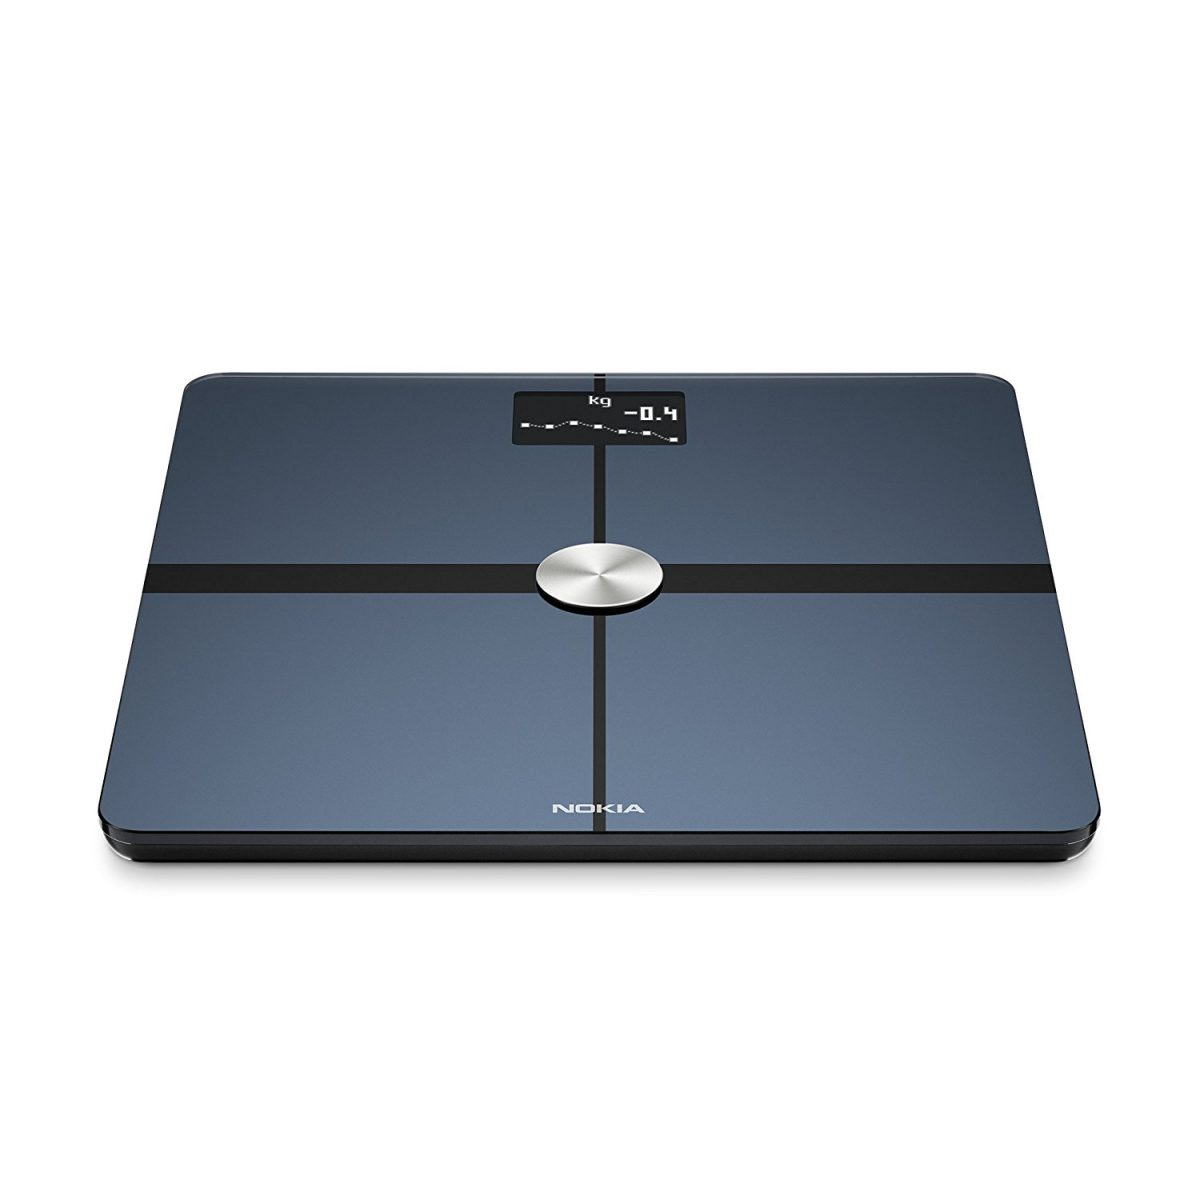 Introducing the All-New Nokia Body +/- Body Composition Wifi Bathroom Scale